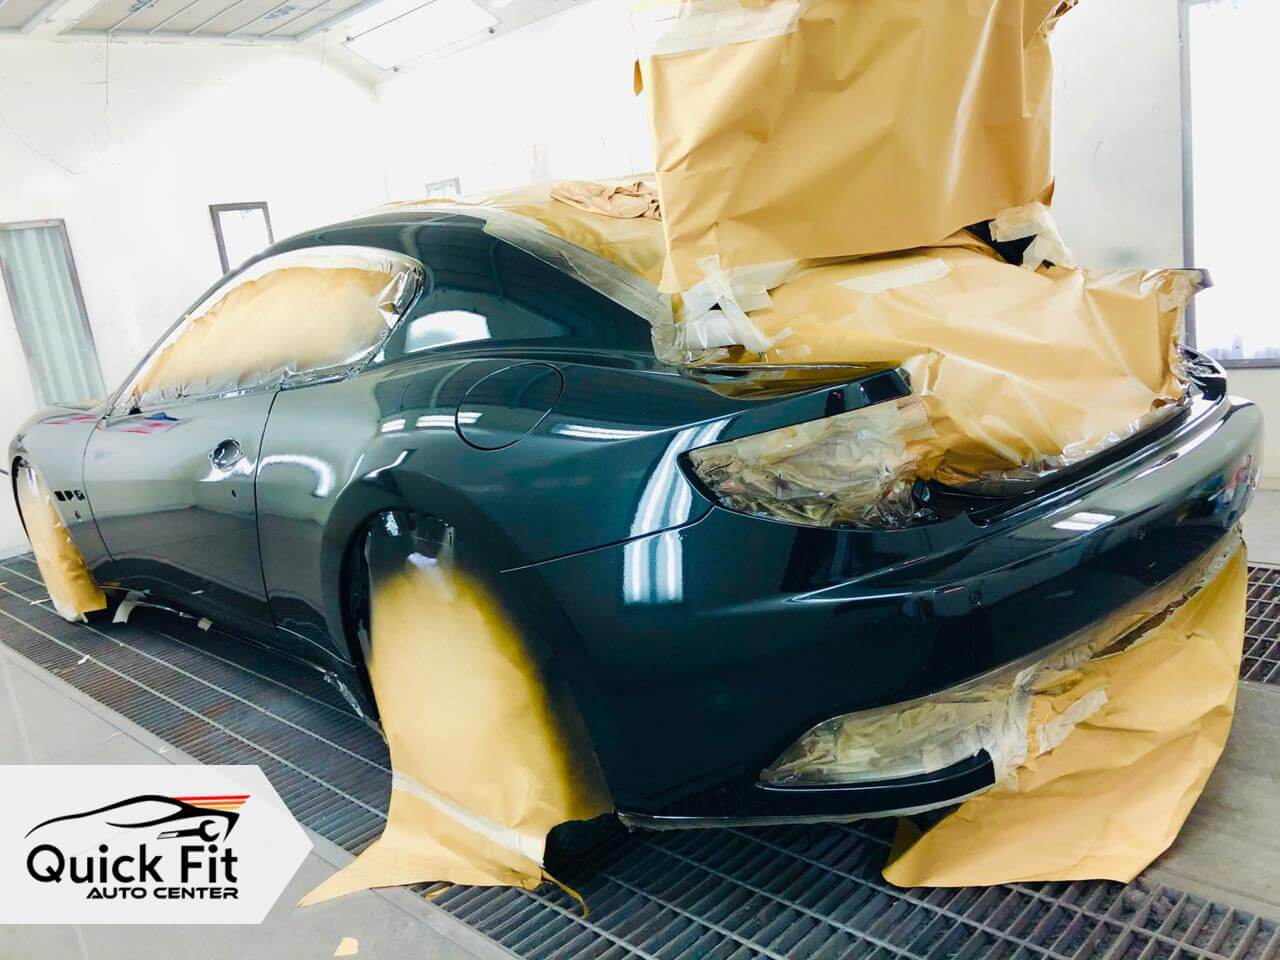 Auto Body Service is going on after complete Car Maintenance in Dubai